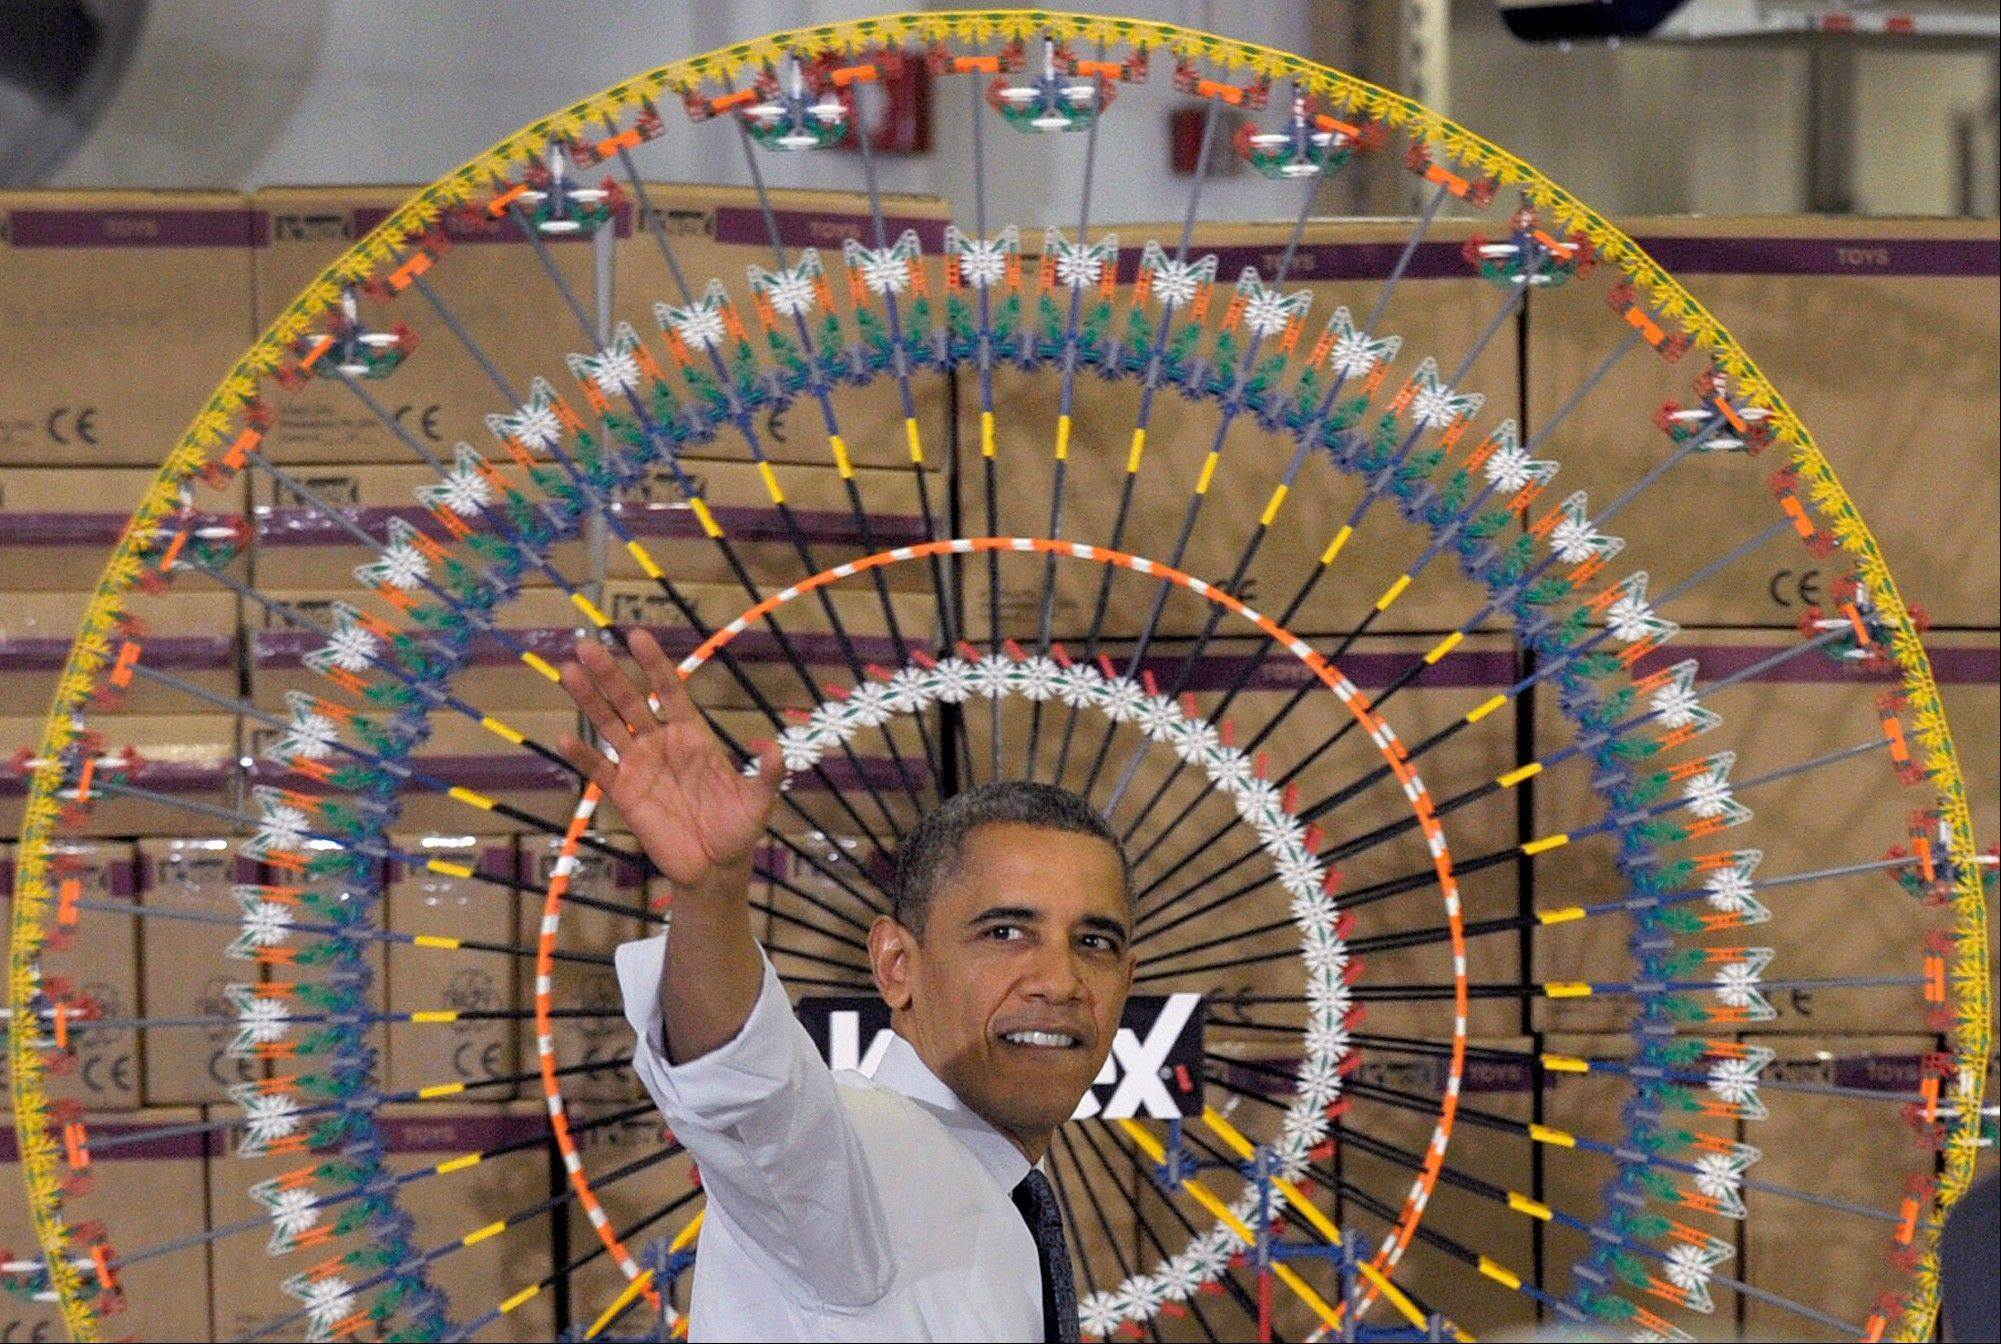 President Barack Obama waves after speaking Friday at the Rodon Group, which manufactures over 95% of the parts for K'NEX Brands toys, in Hatfield, Pa. The visit comes as the White House continues a week of public outreach efforts, while also attempting to negotiate a deal with congressional leaders.